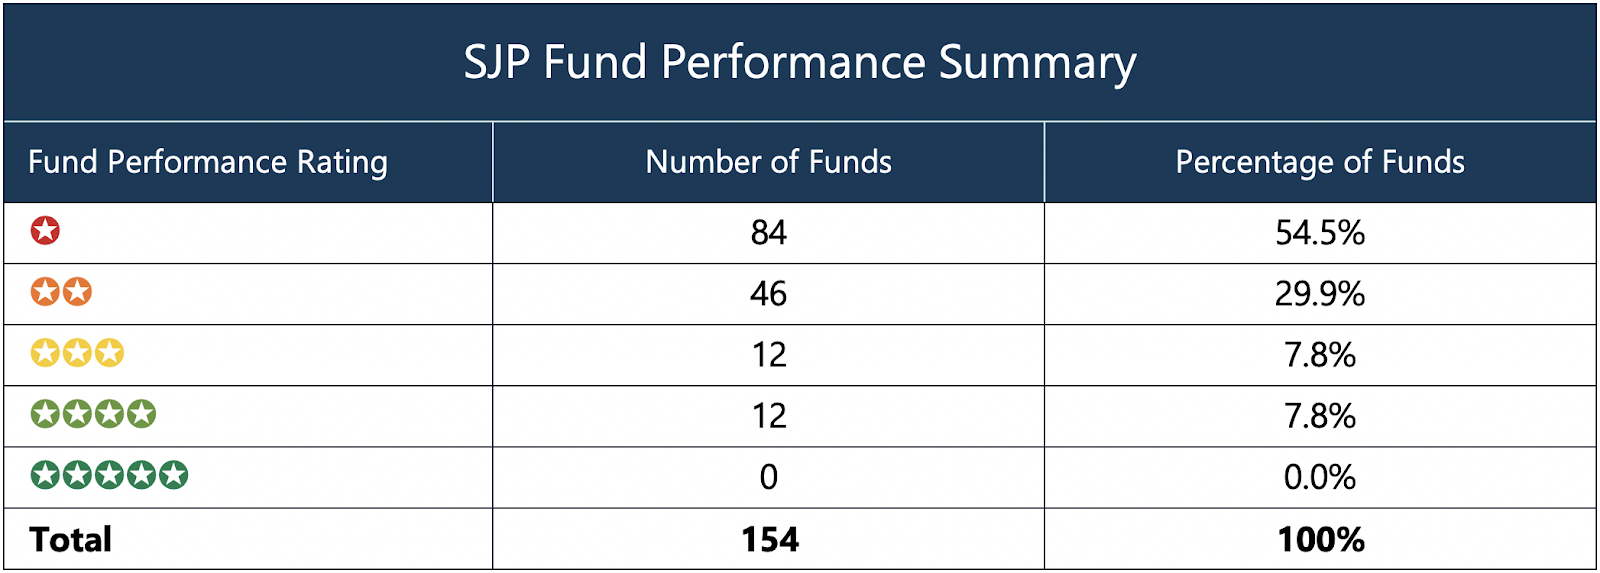 St James's Place Fund Performance Summary